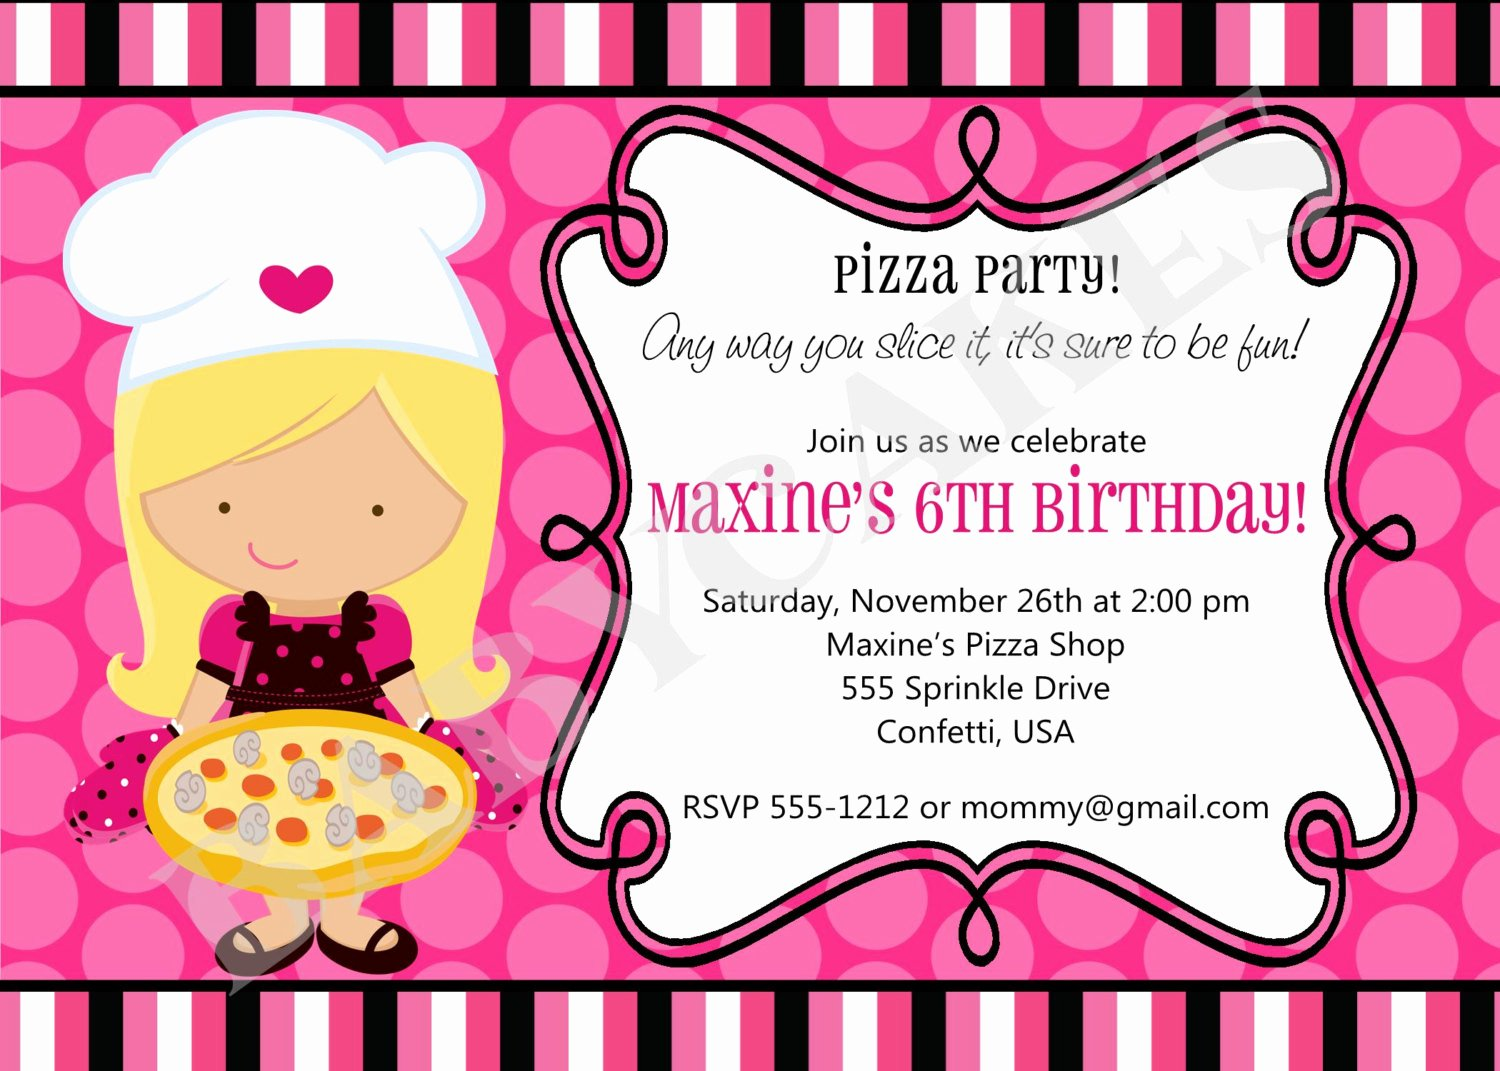 Pizza Party Invitation Template Awesome Printable Pizza Party Invitations